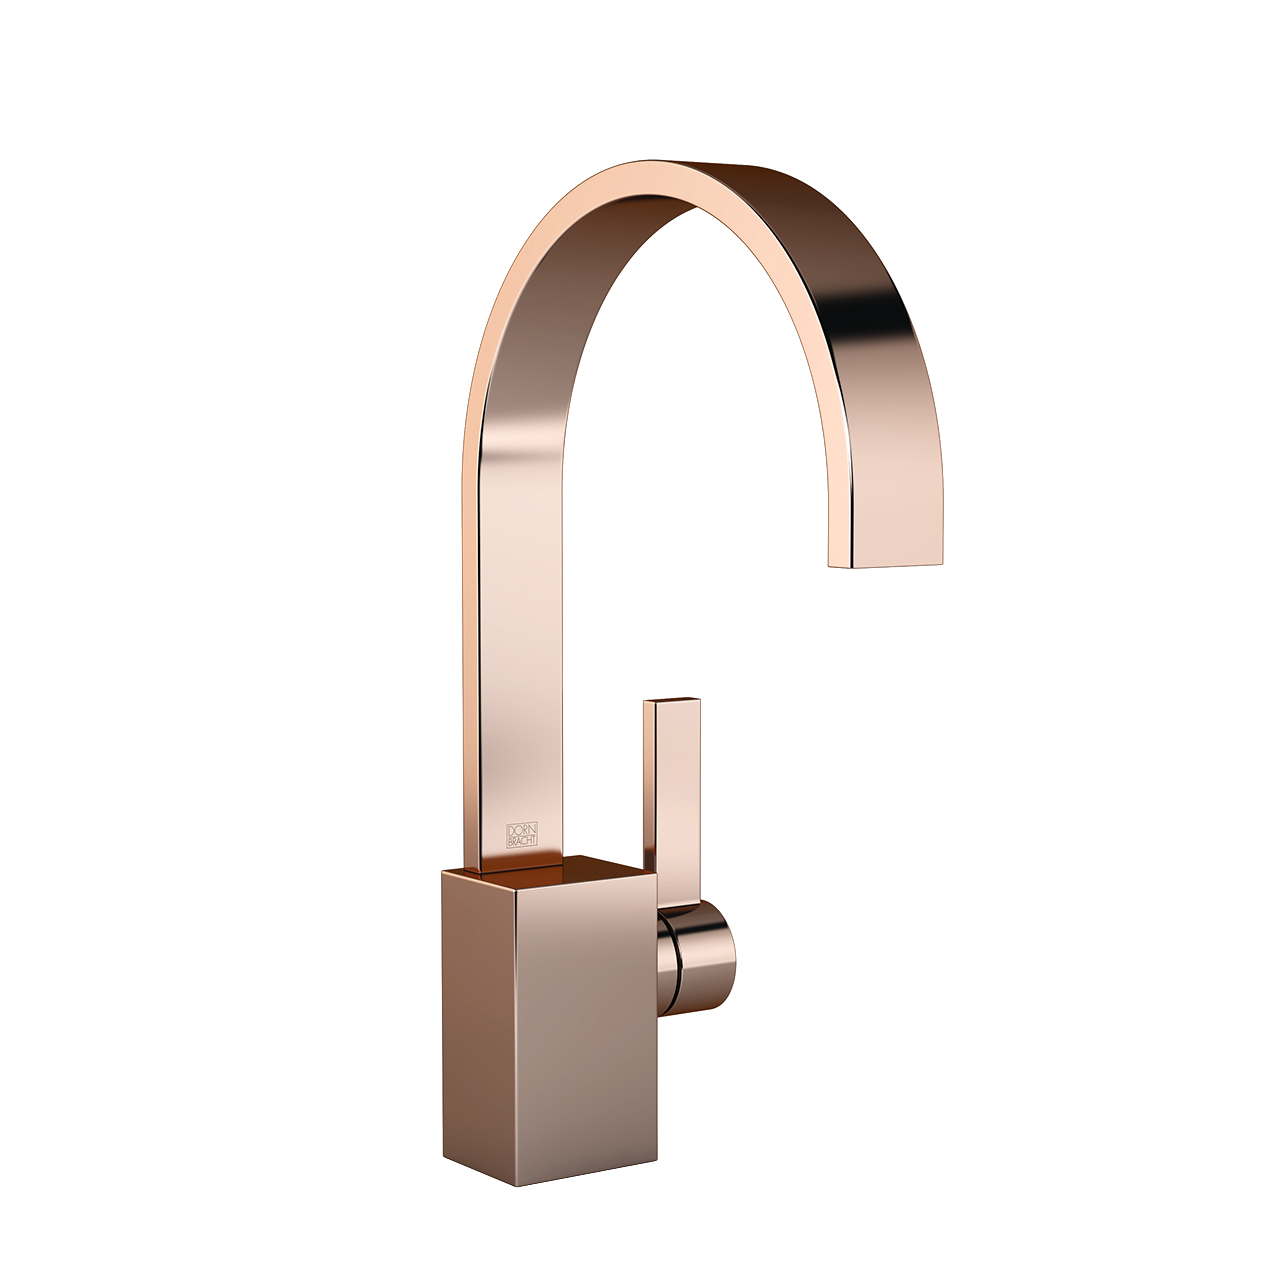 Kitchen Lighting Design Mem Single Lever Basin Mixer By Dornbracht Dimensiva